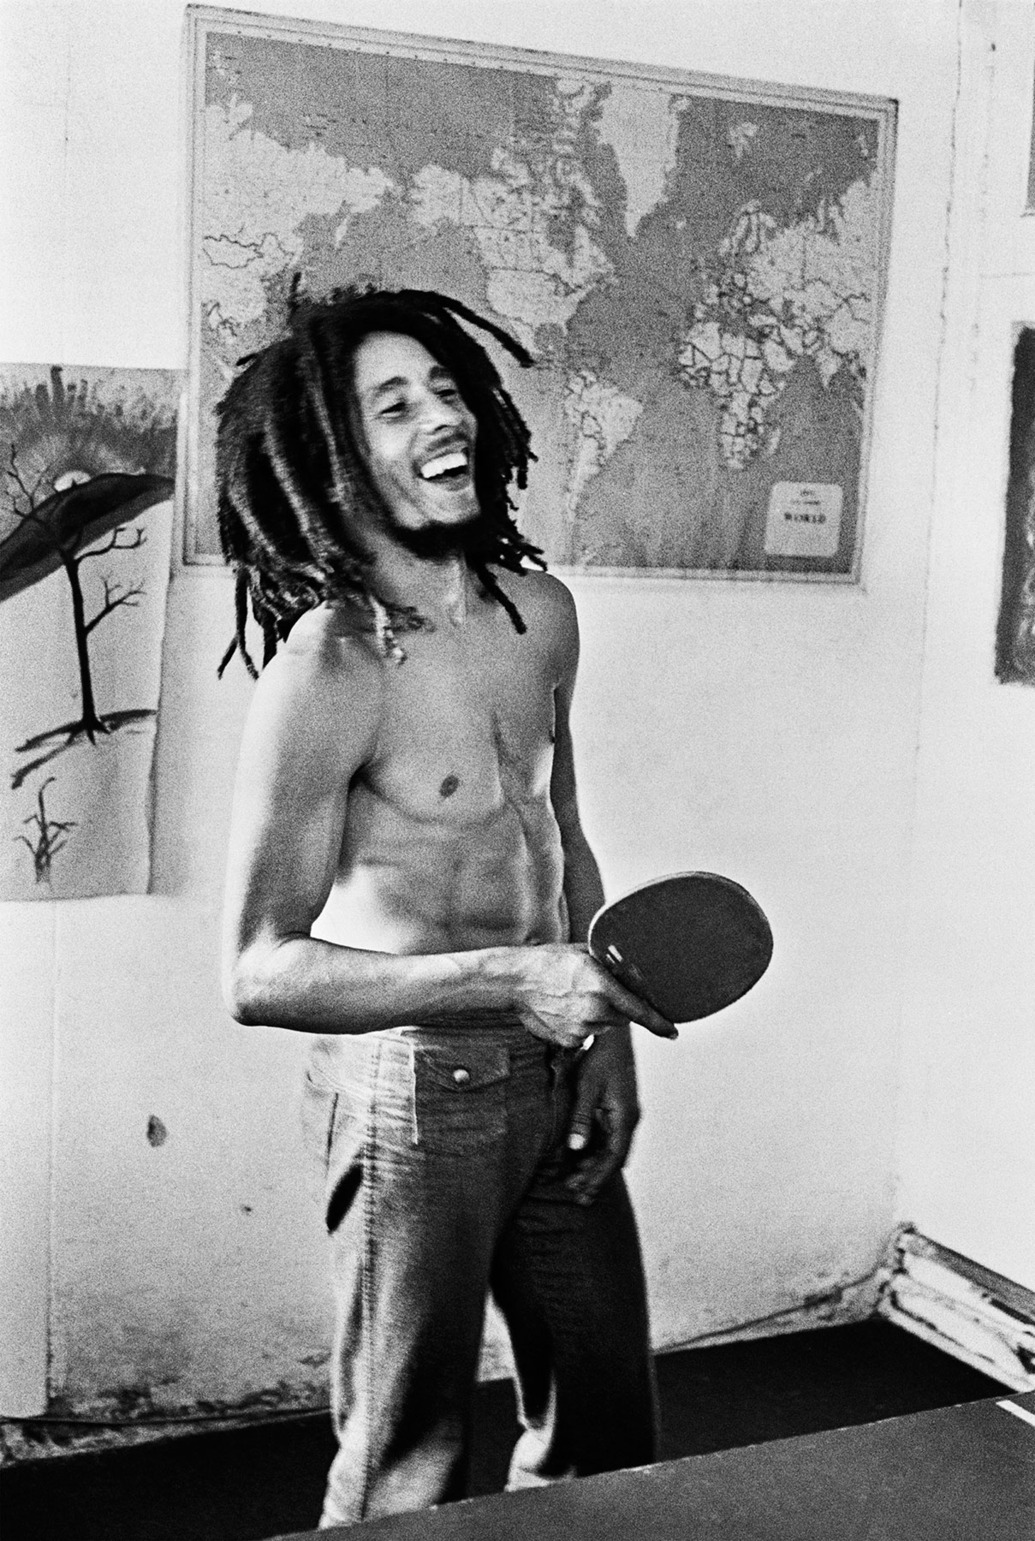 Bob-Marley-Passes-Time